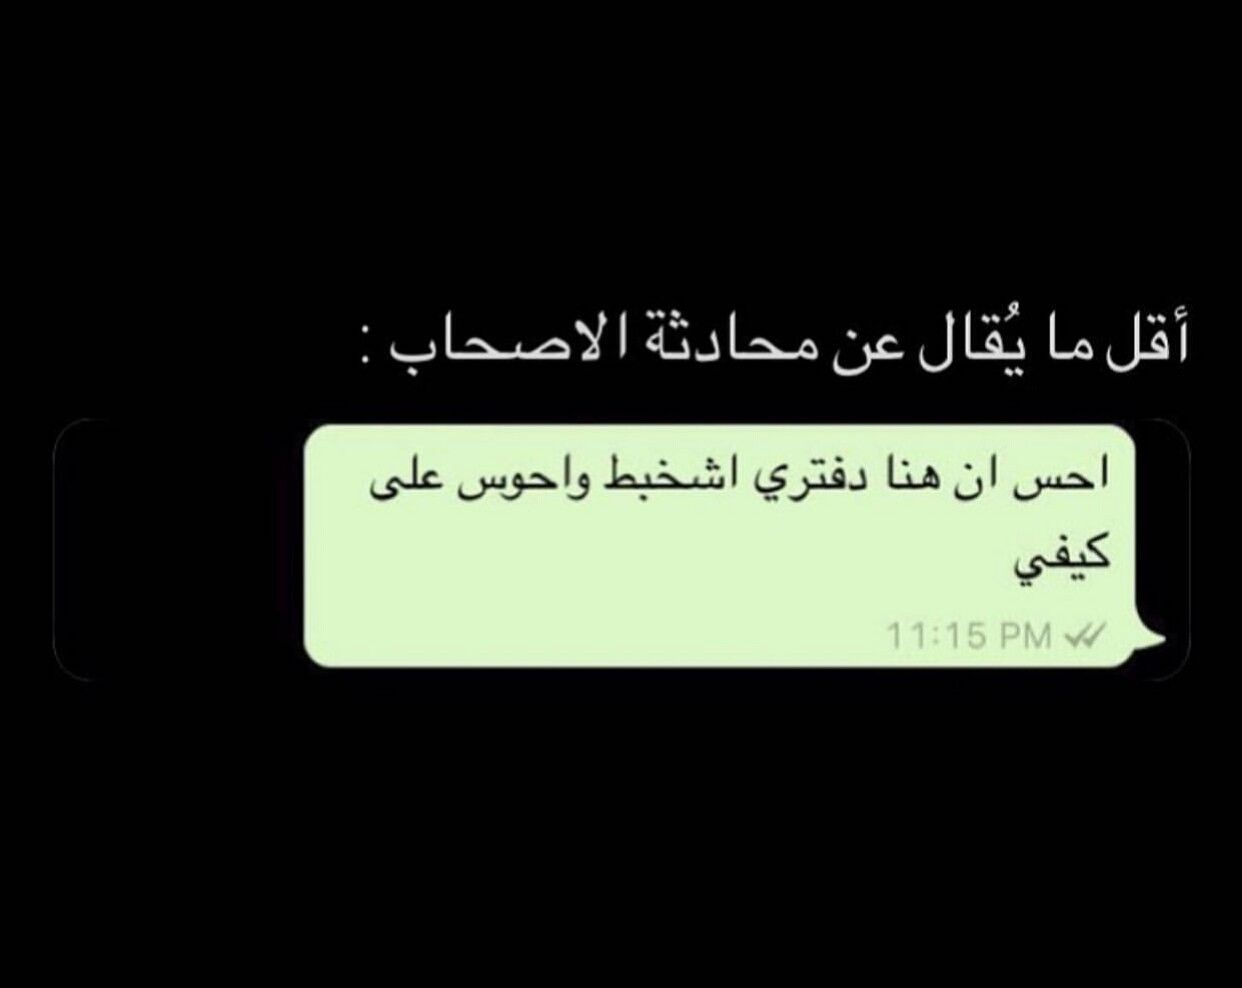 Pin By Llllllllll 2 On مفضلتي Best Friend Quotes Friends Quotes Arabic Quotes